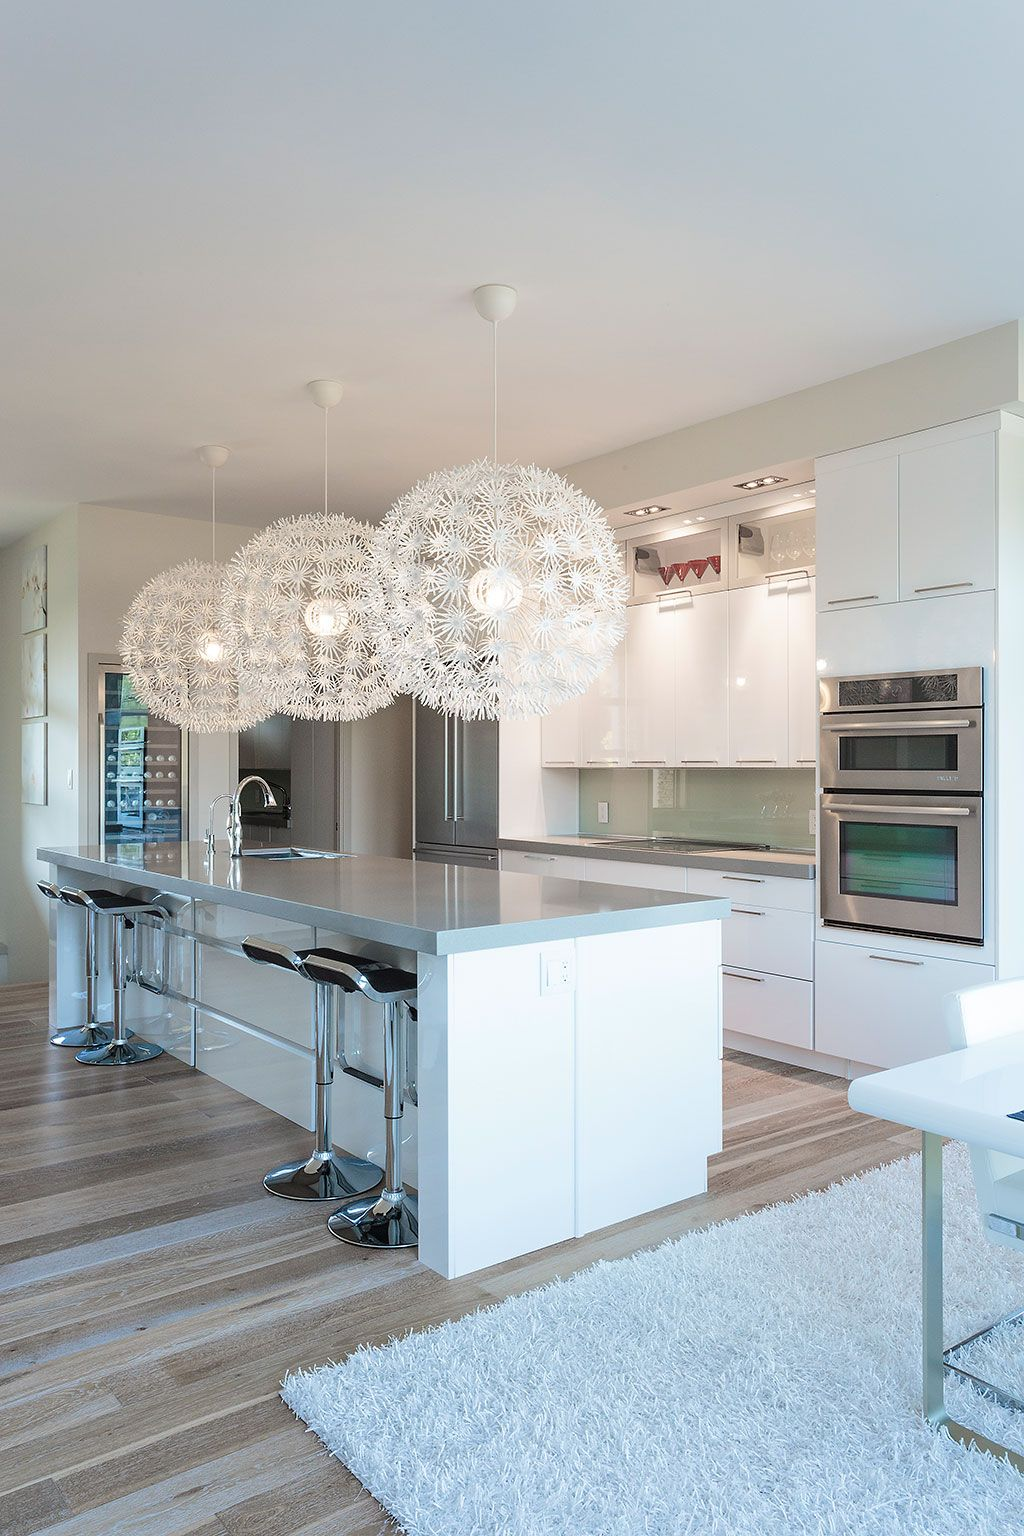 This Kitchen Was Designed In The Arcadia Door Style In Hdf High Density Fiberboard Finished In High Gloss Modern Kitchen Design Kitchen Design Modern Kitchen